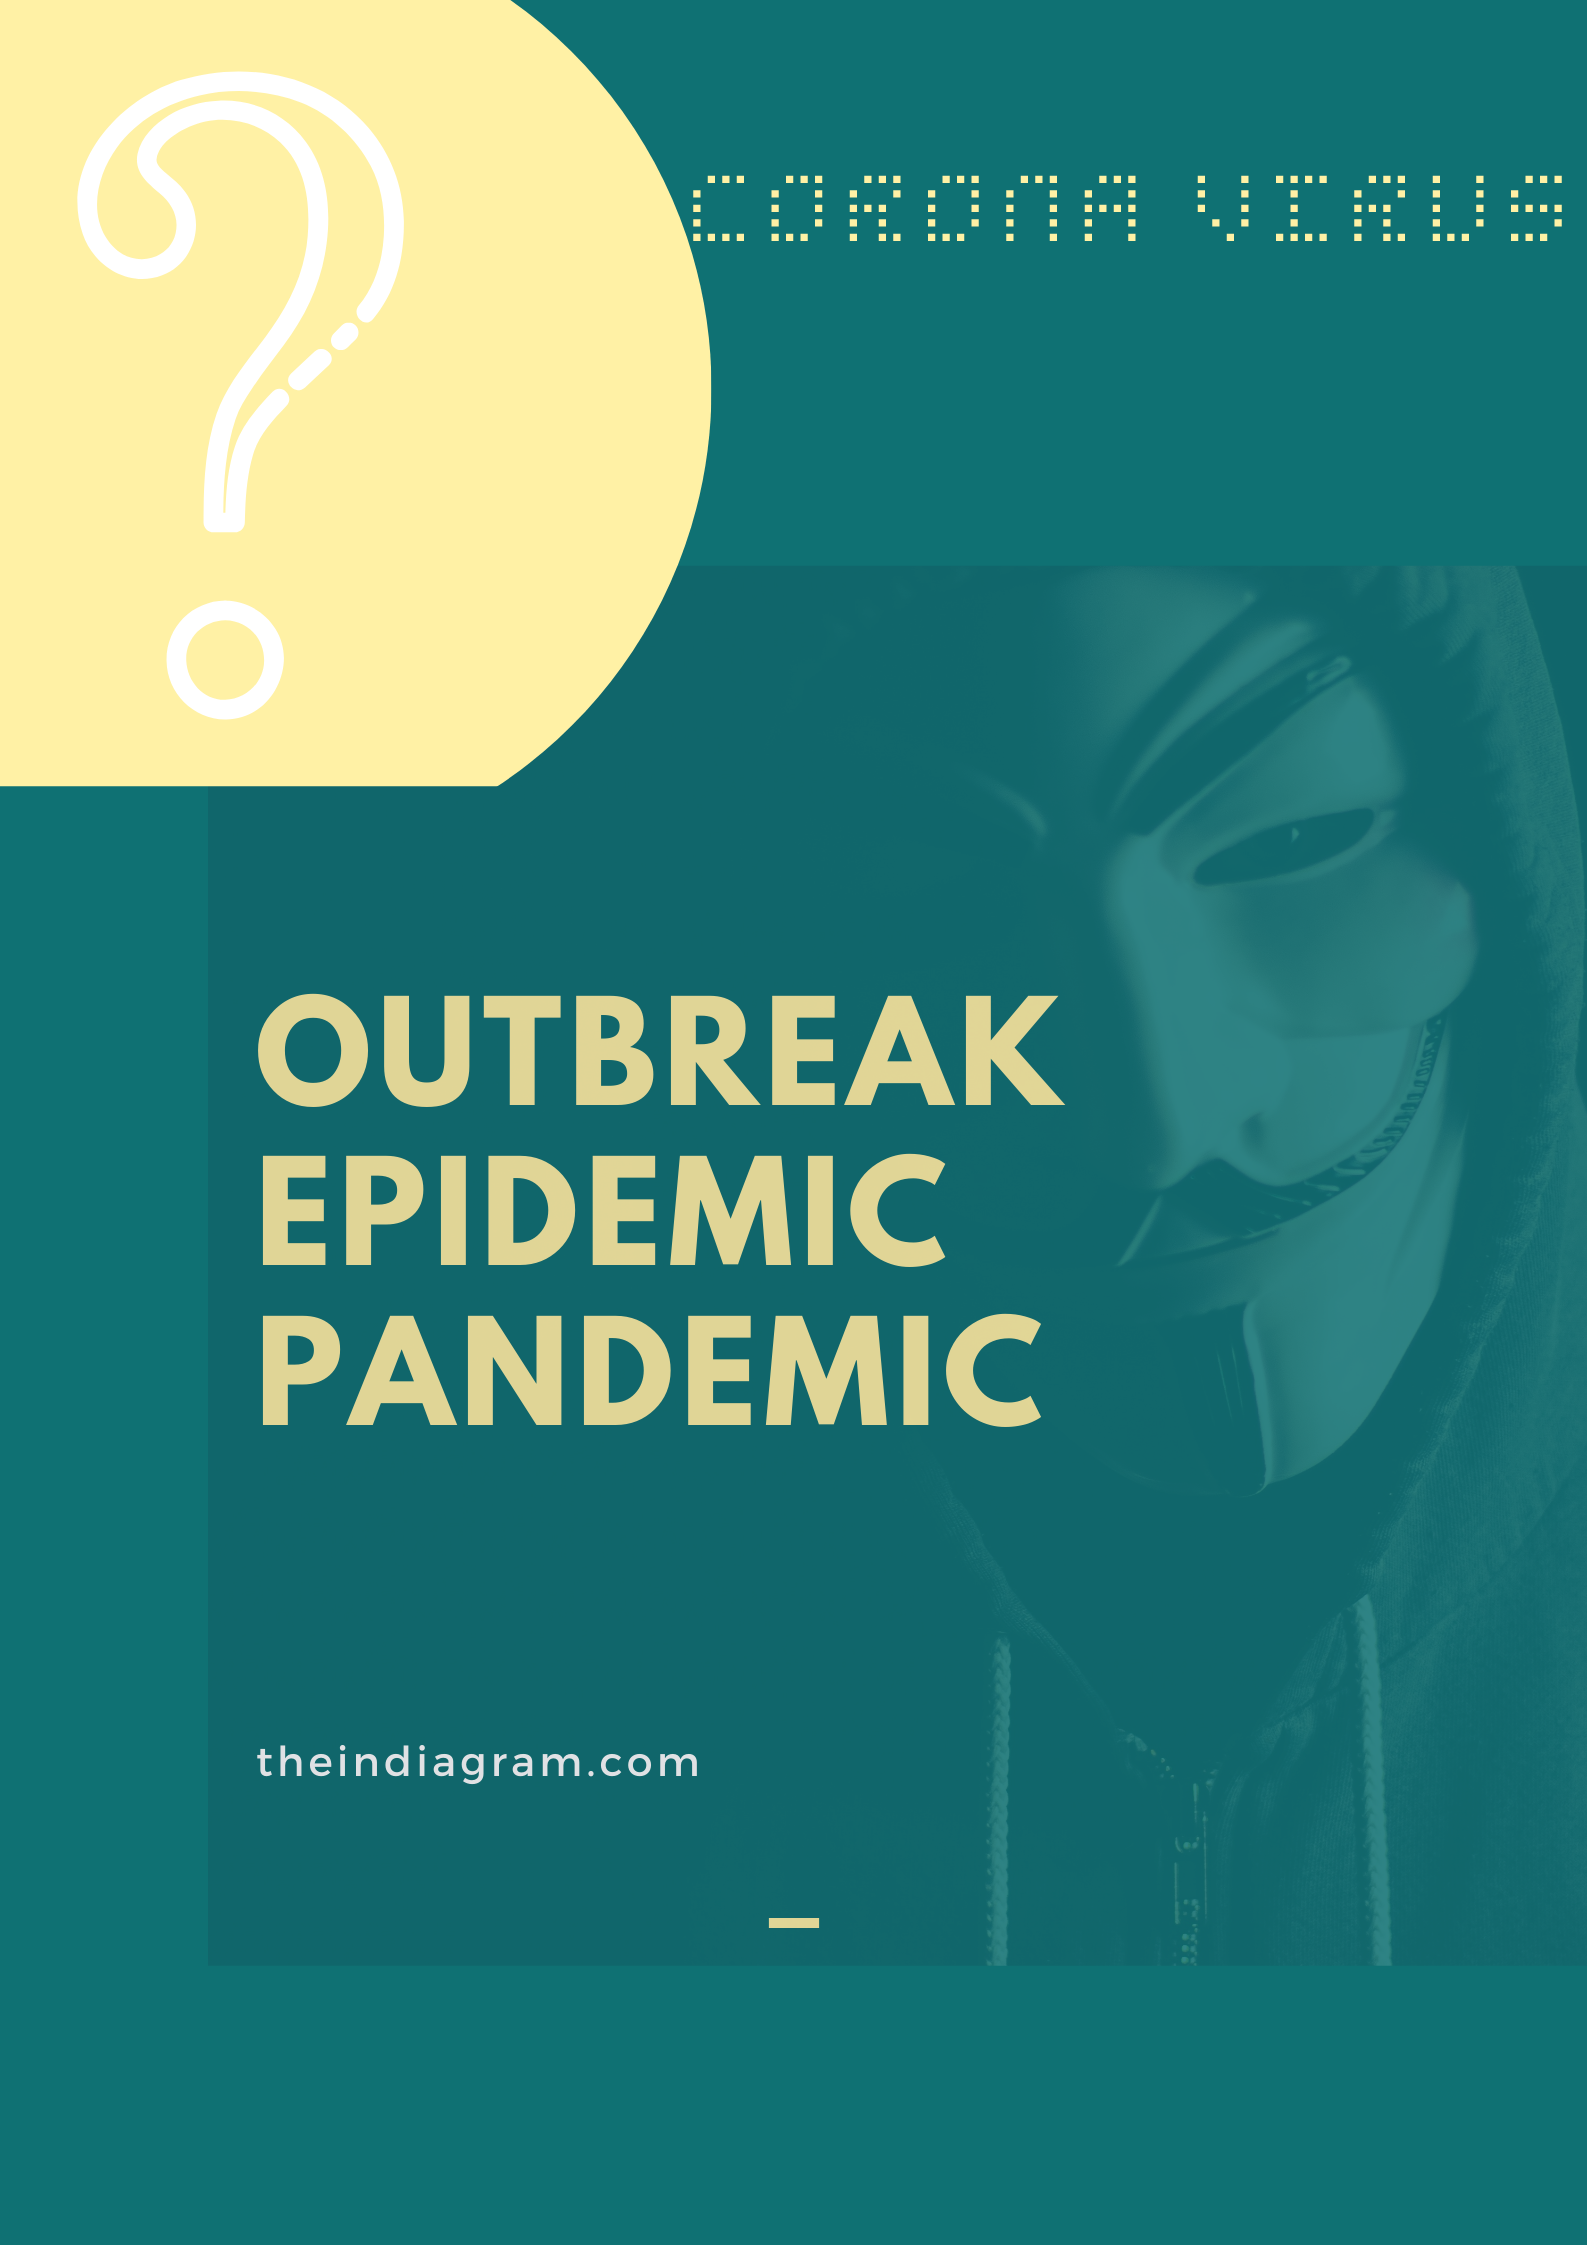 Difference between outbreak and pandemic